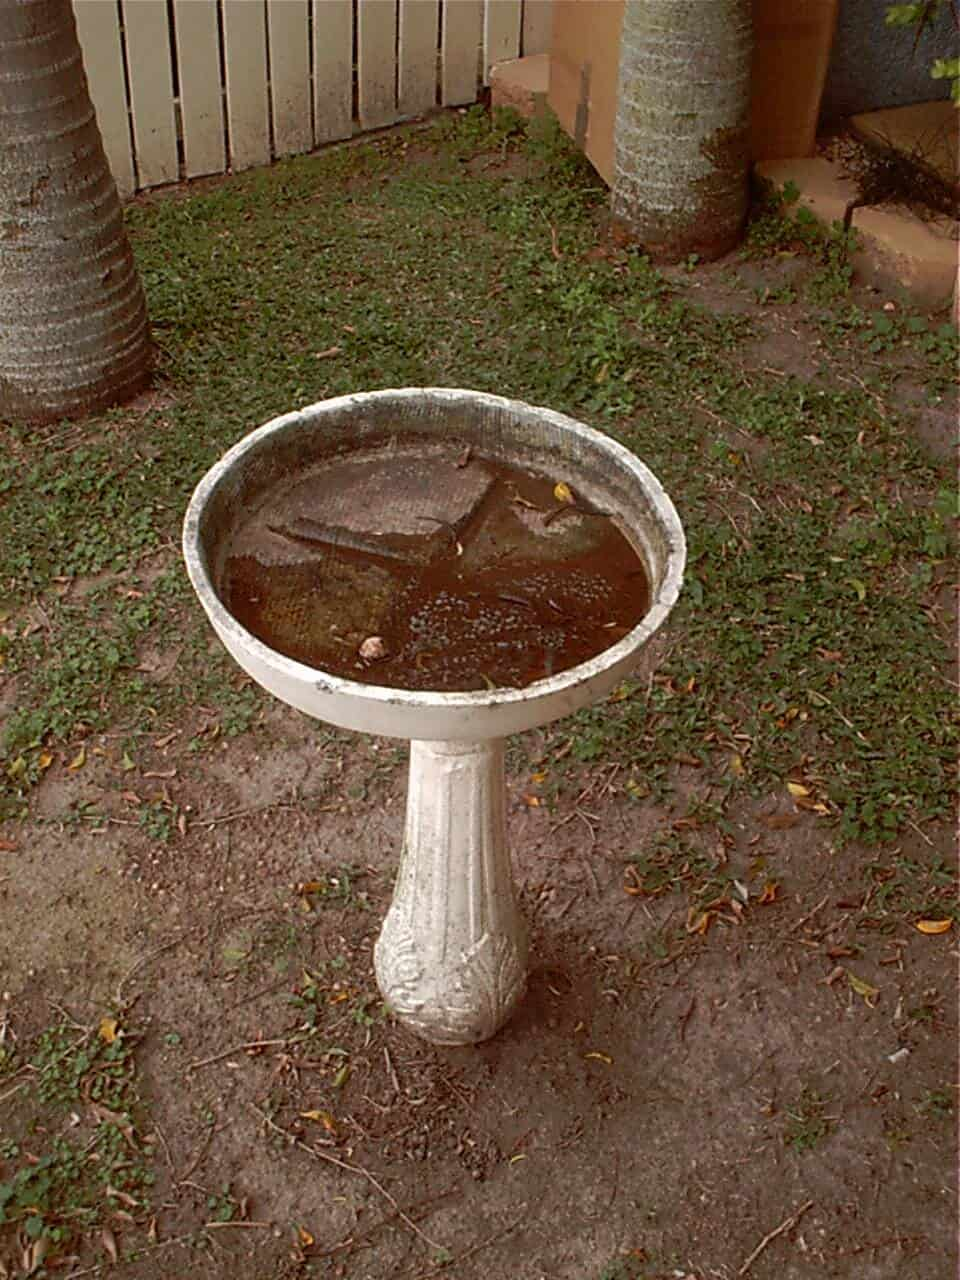 Asbestos Audits Queensland AAQ PL - Birdbath can contain Asbestos